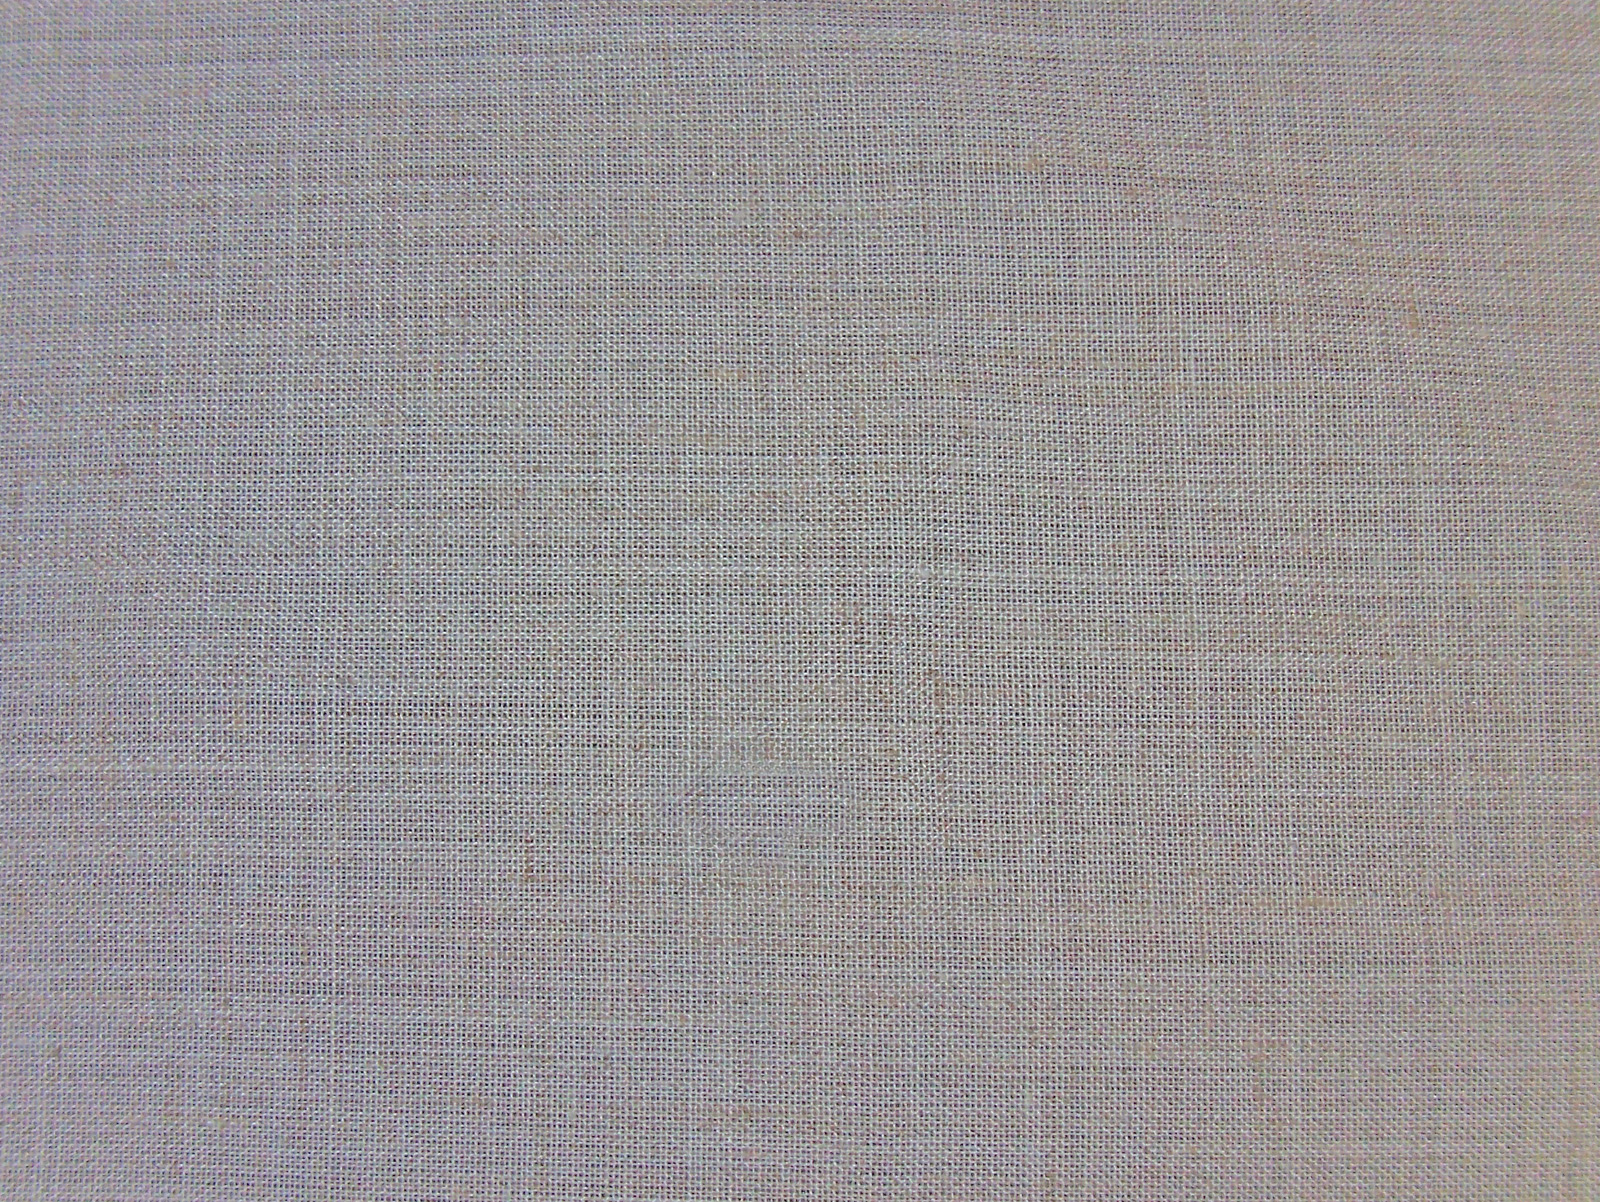 fabric_linen_by_jaqx_textures.jpg